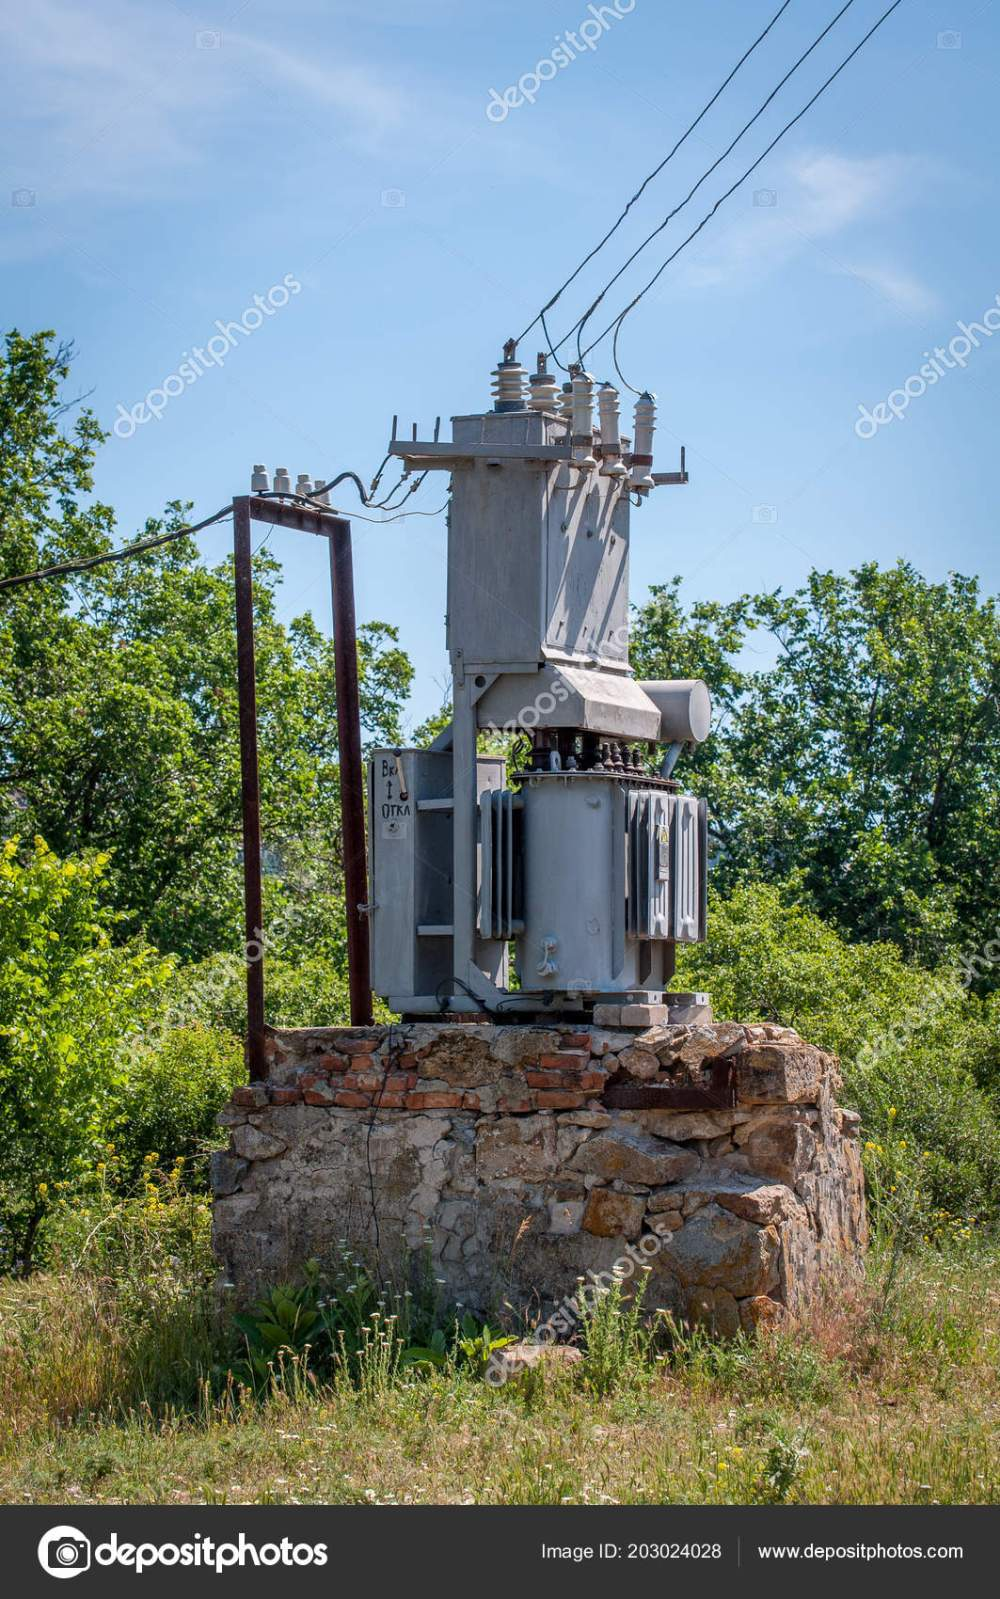 medium resolution of electrical transformer stone stand old high voltage power station stock photo